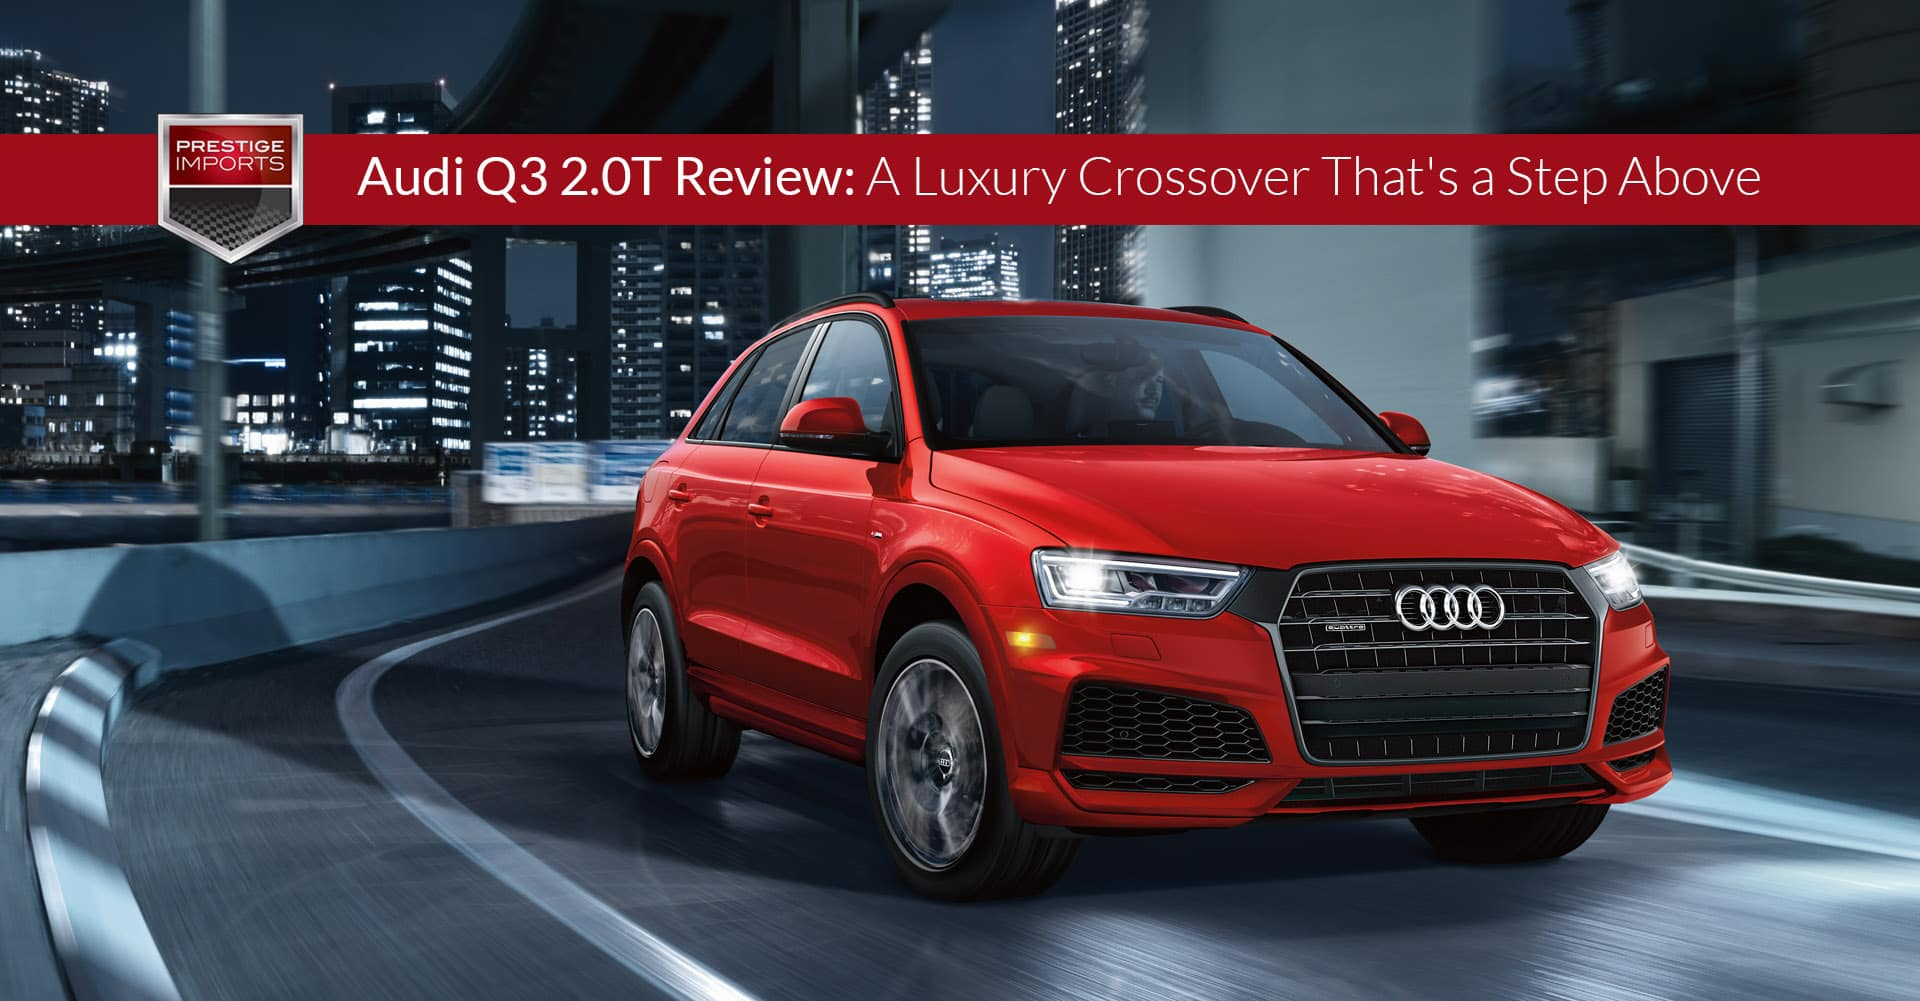 audi q3 2.0t review: a luxury crossover that's a step above